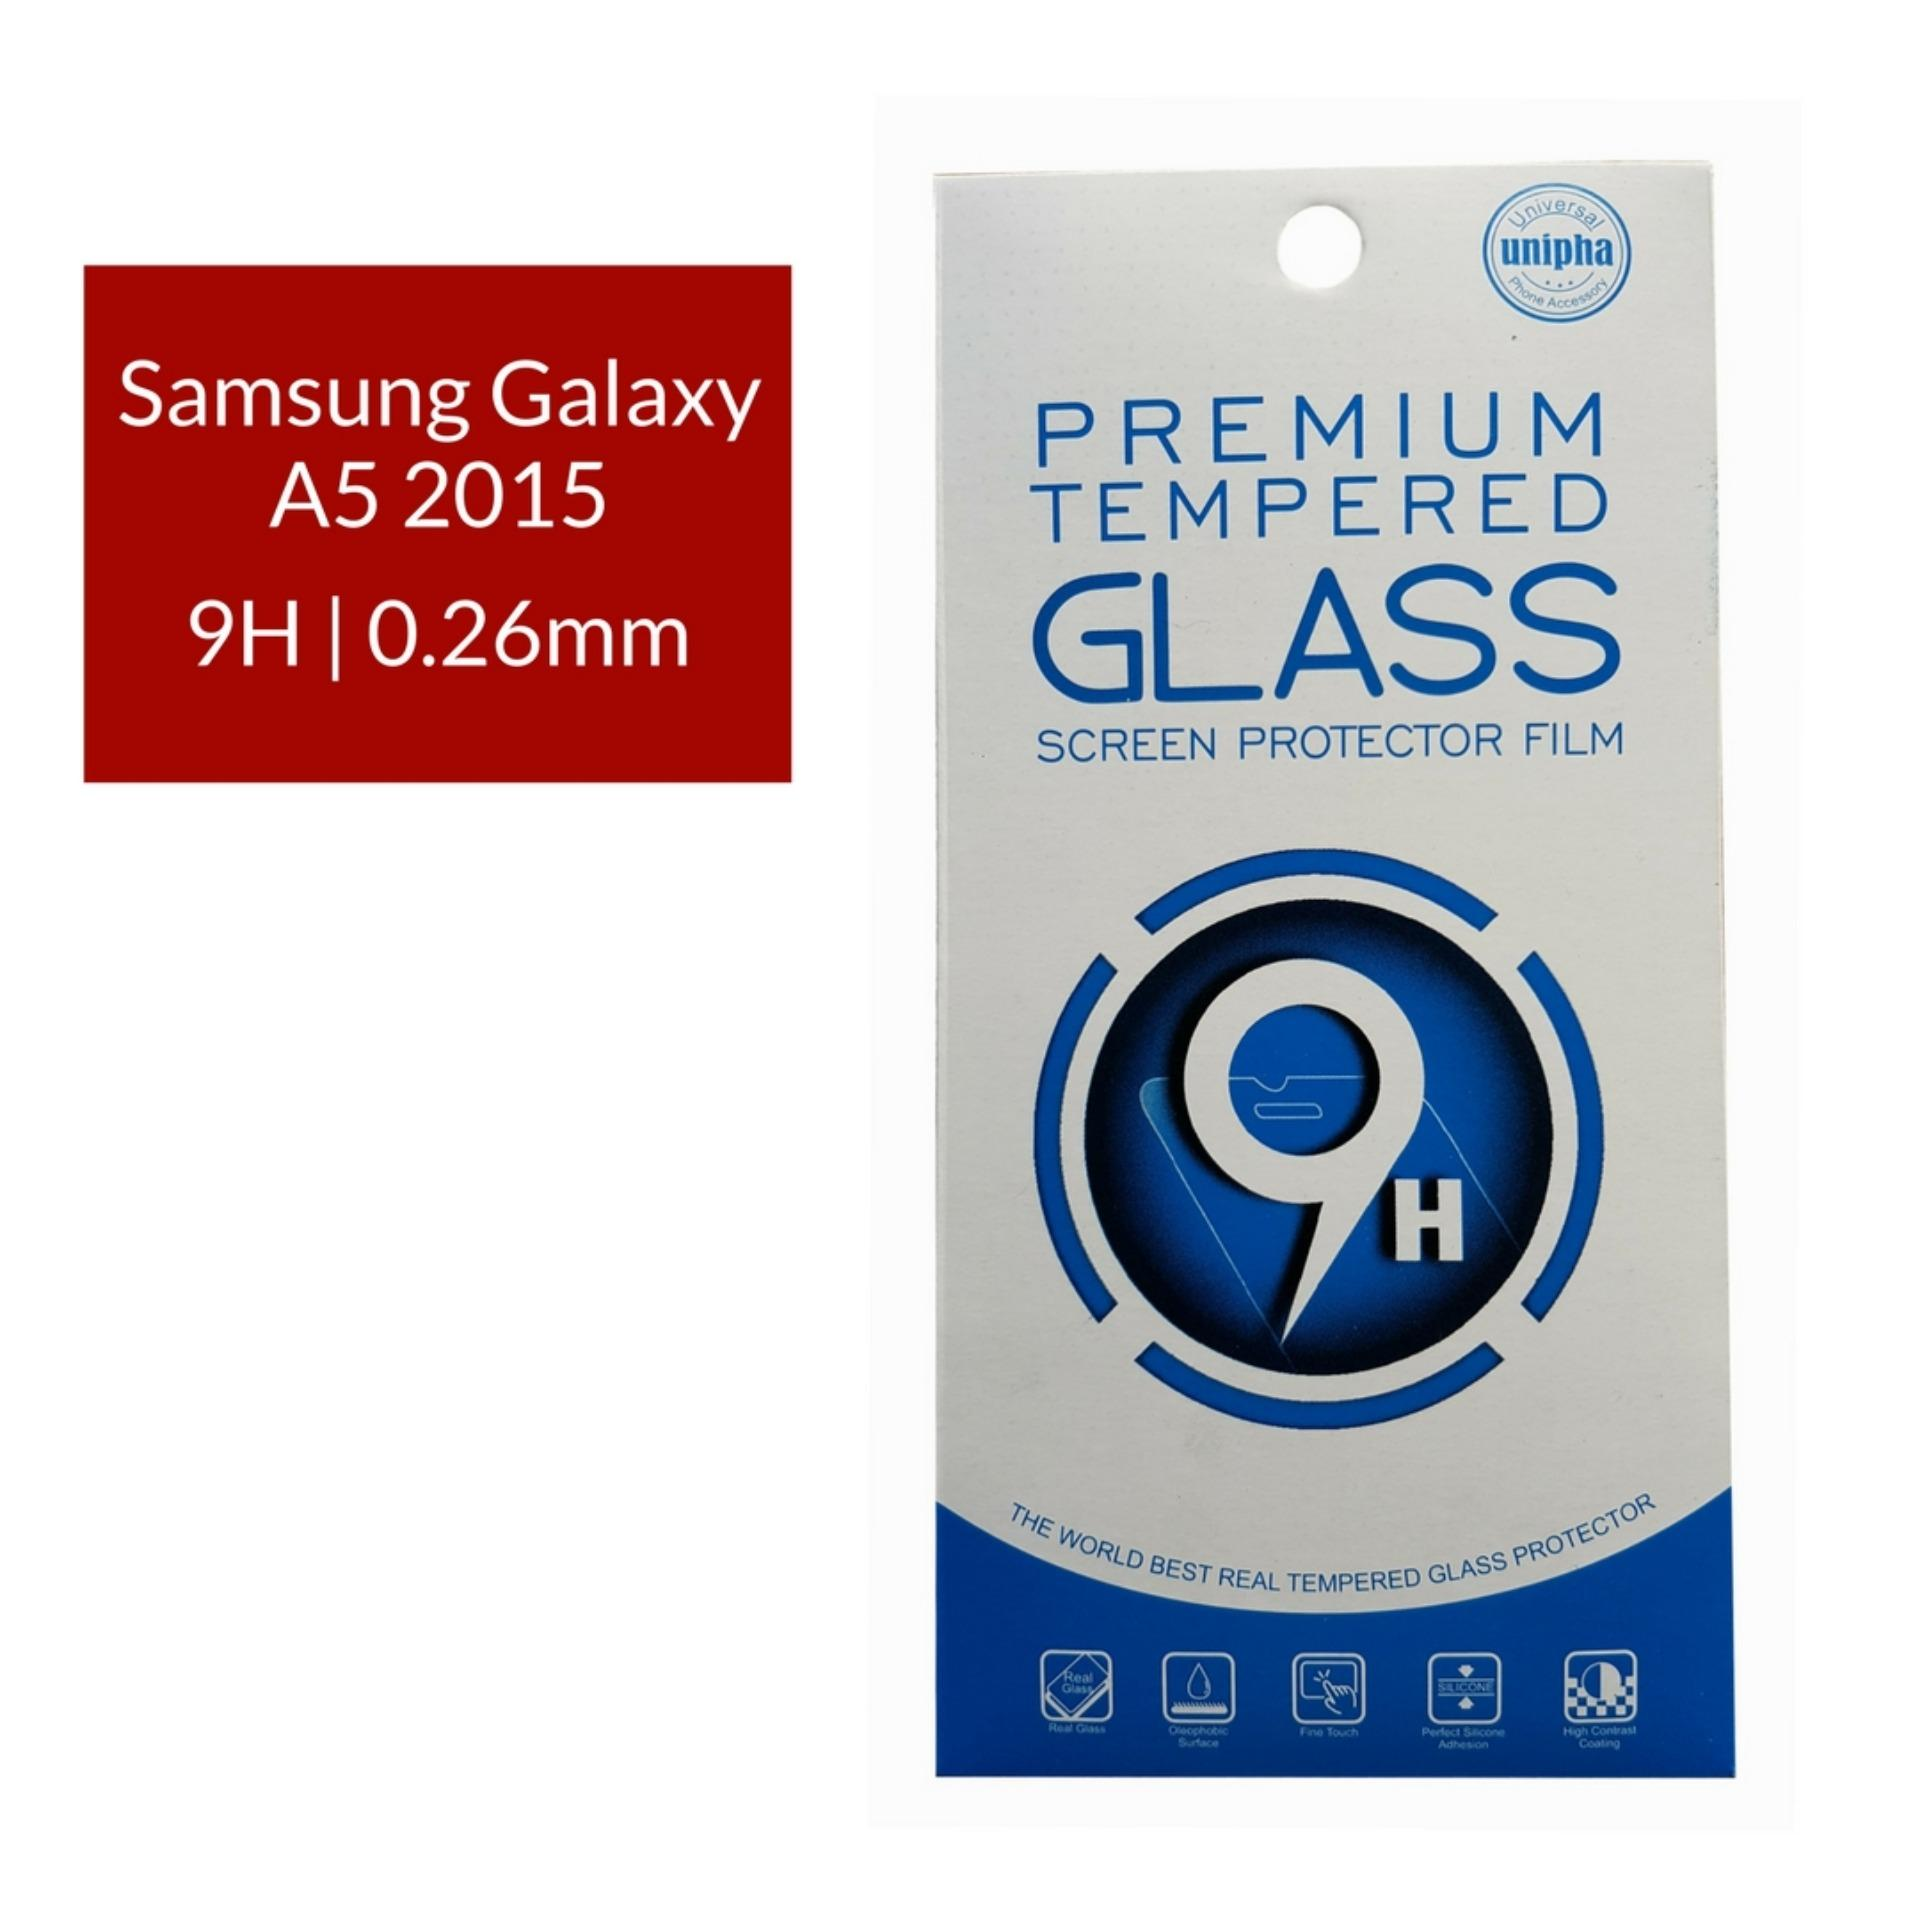 Unipha Premium Tempered Glass Screen Protector / Anti Gores Kaca Samsung Galaxy A5 2015 - Bening